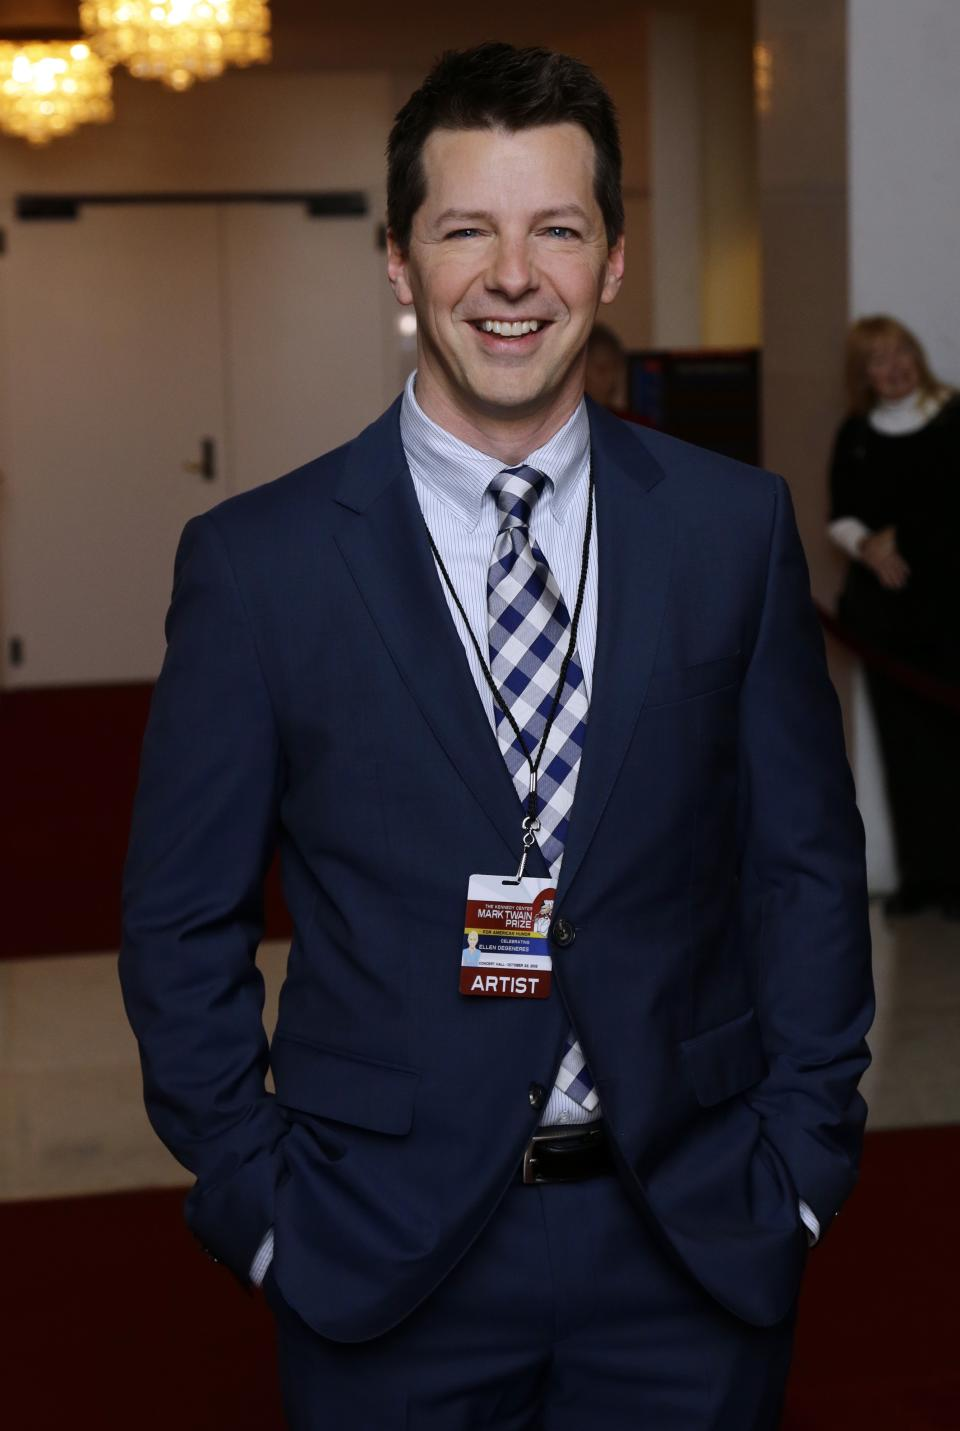 Actor Sean Hayes poses for photographers on the red carpet before entertainer Ellen DeGeneres receives the 15th annual Mark Twain Prize for American Humor at the Kennedy Center, Monday, Oct. 22, 2012, in Washington. (AP Photo/Alex Brandon)